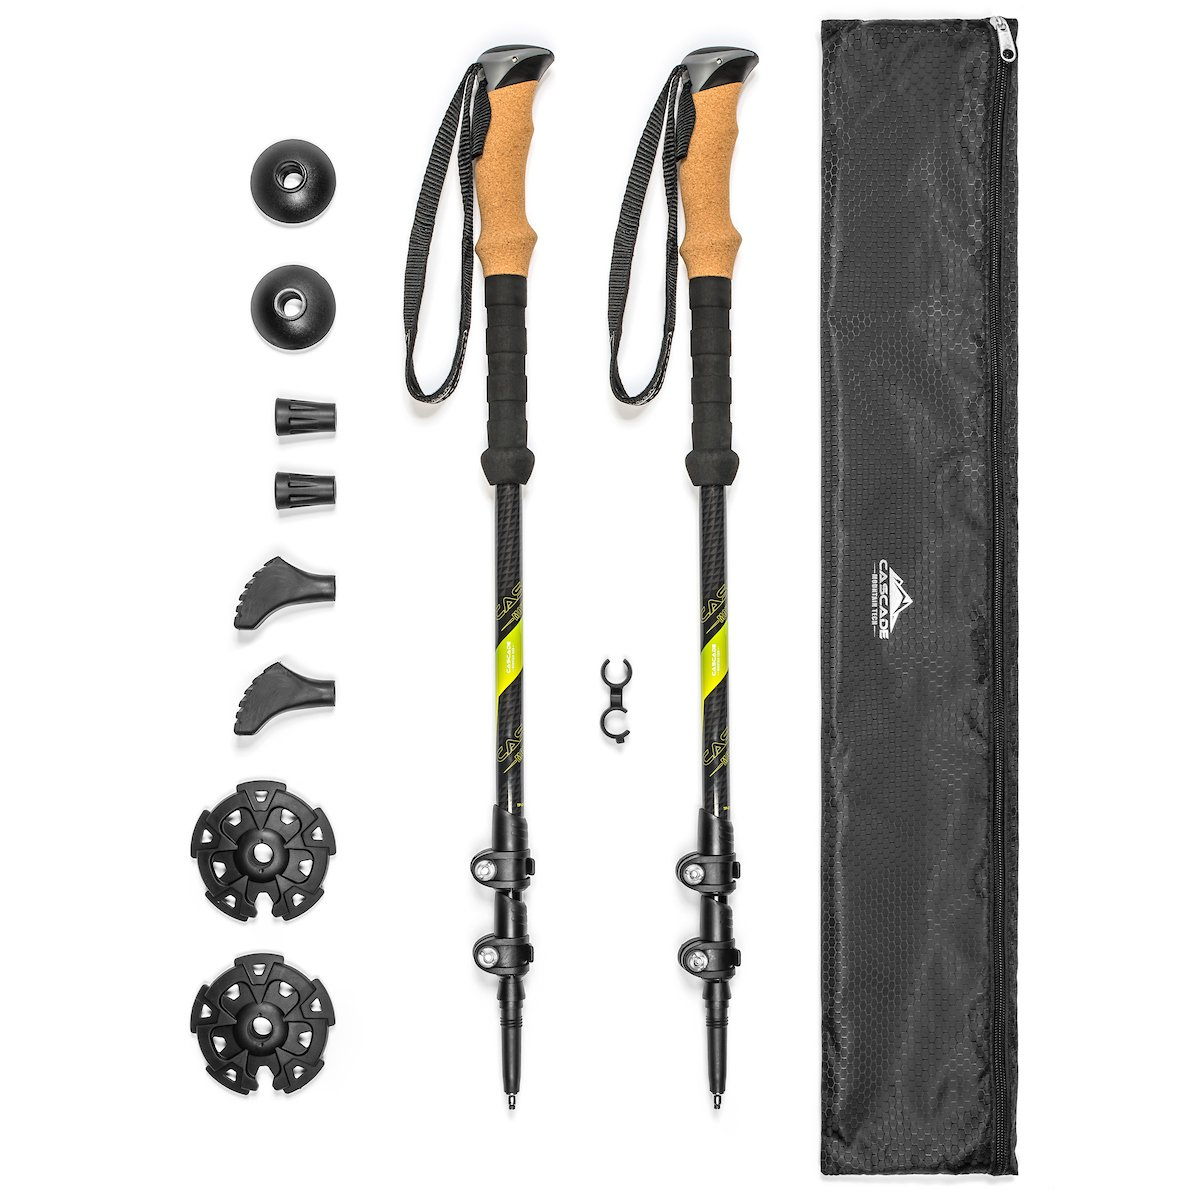 Cascade Mountain Tech Carbon Fiber Quick Lock Trekking Poles Cork Grip